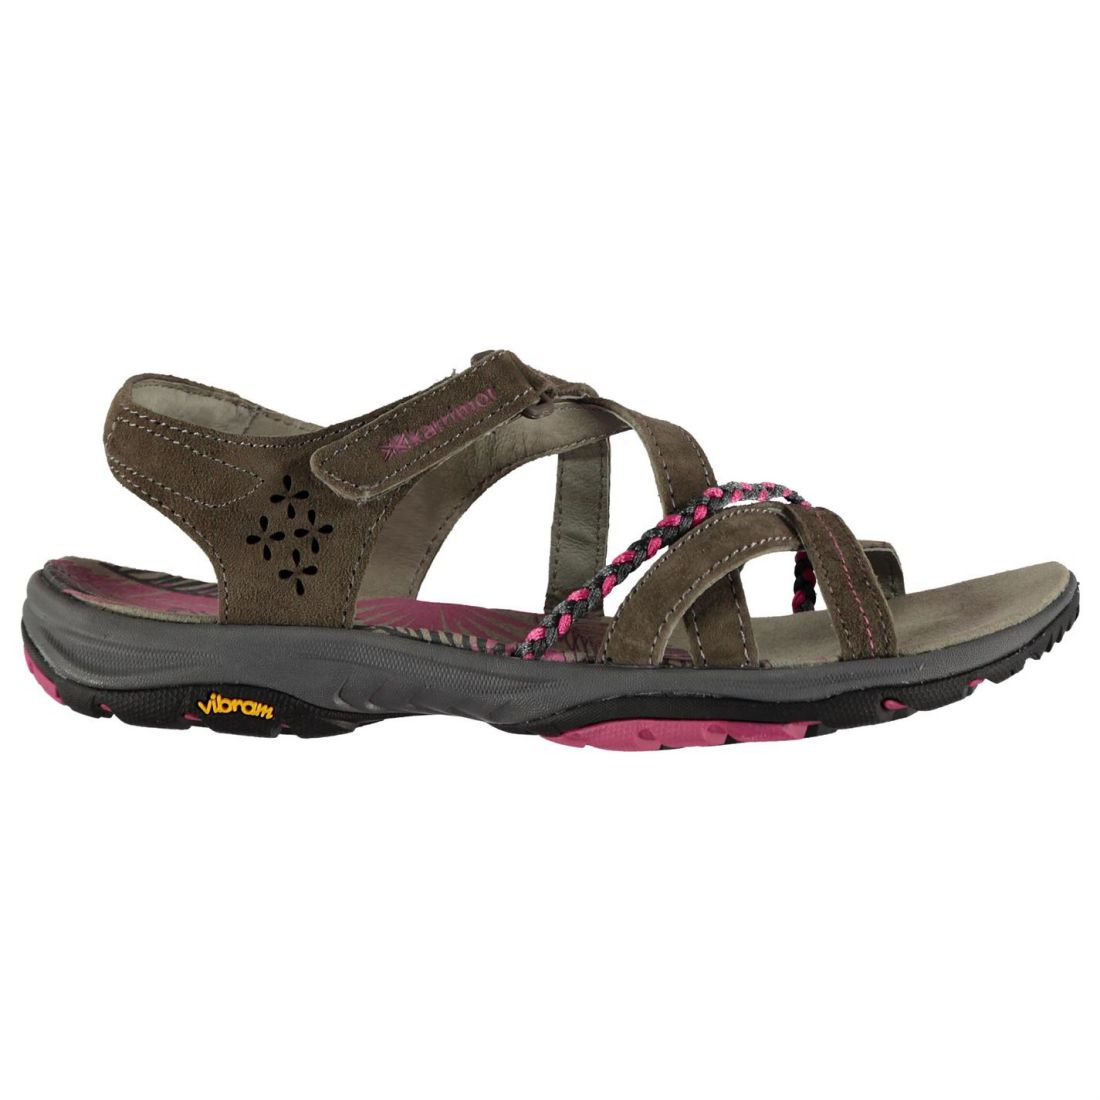 ab450189cff3 Image is loading Karrimor-Tobago-Ladies-Sandals